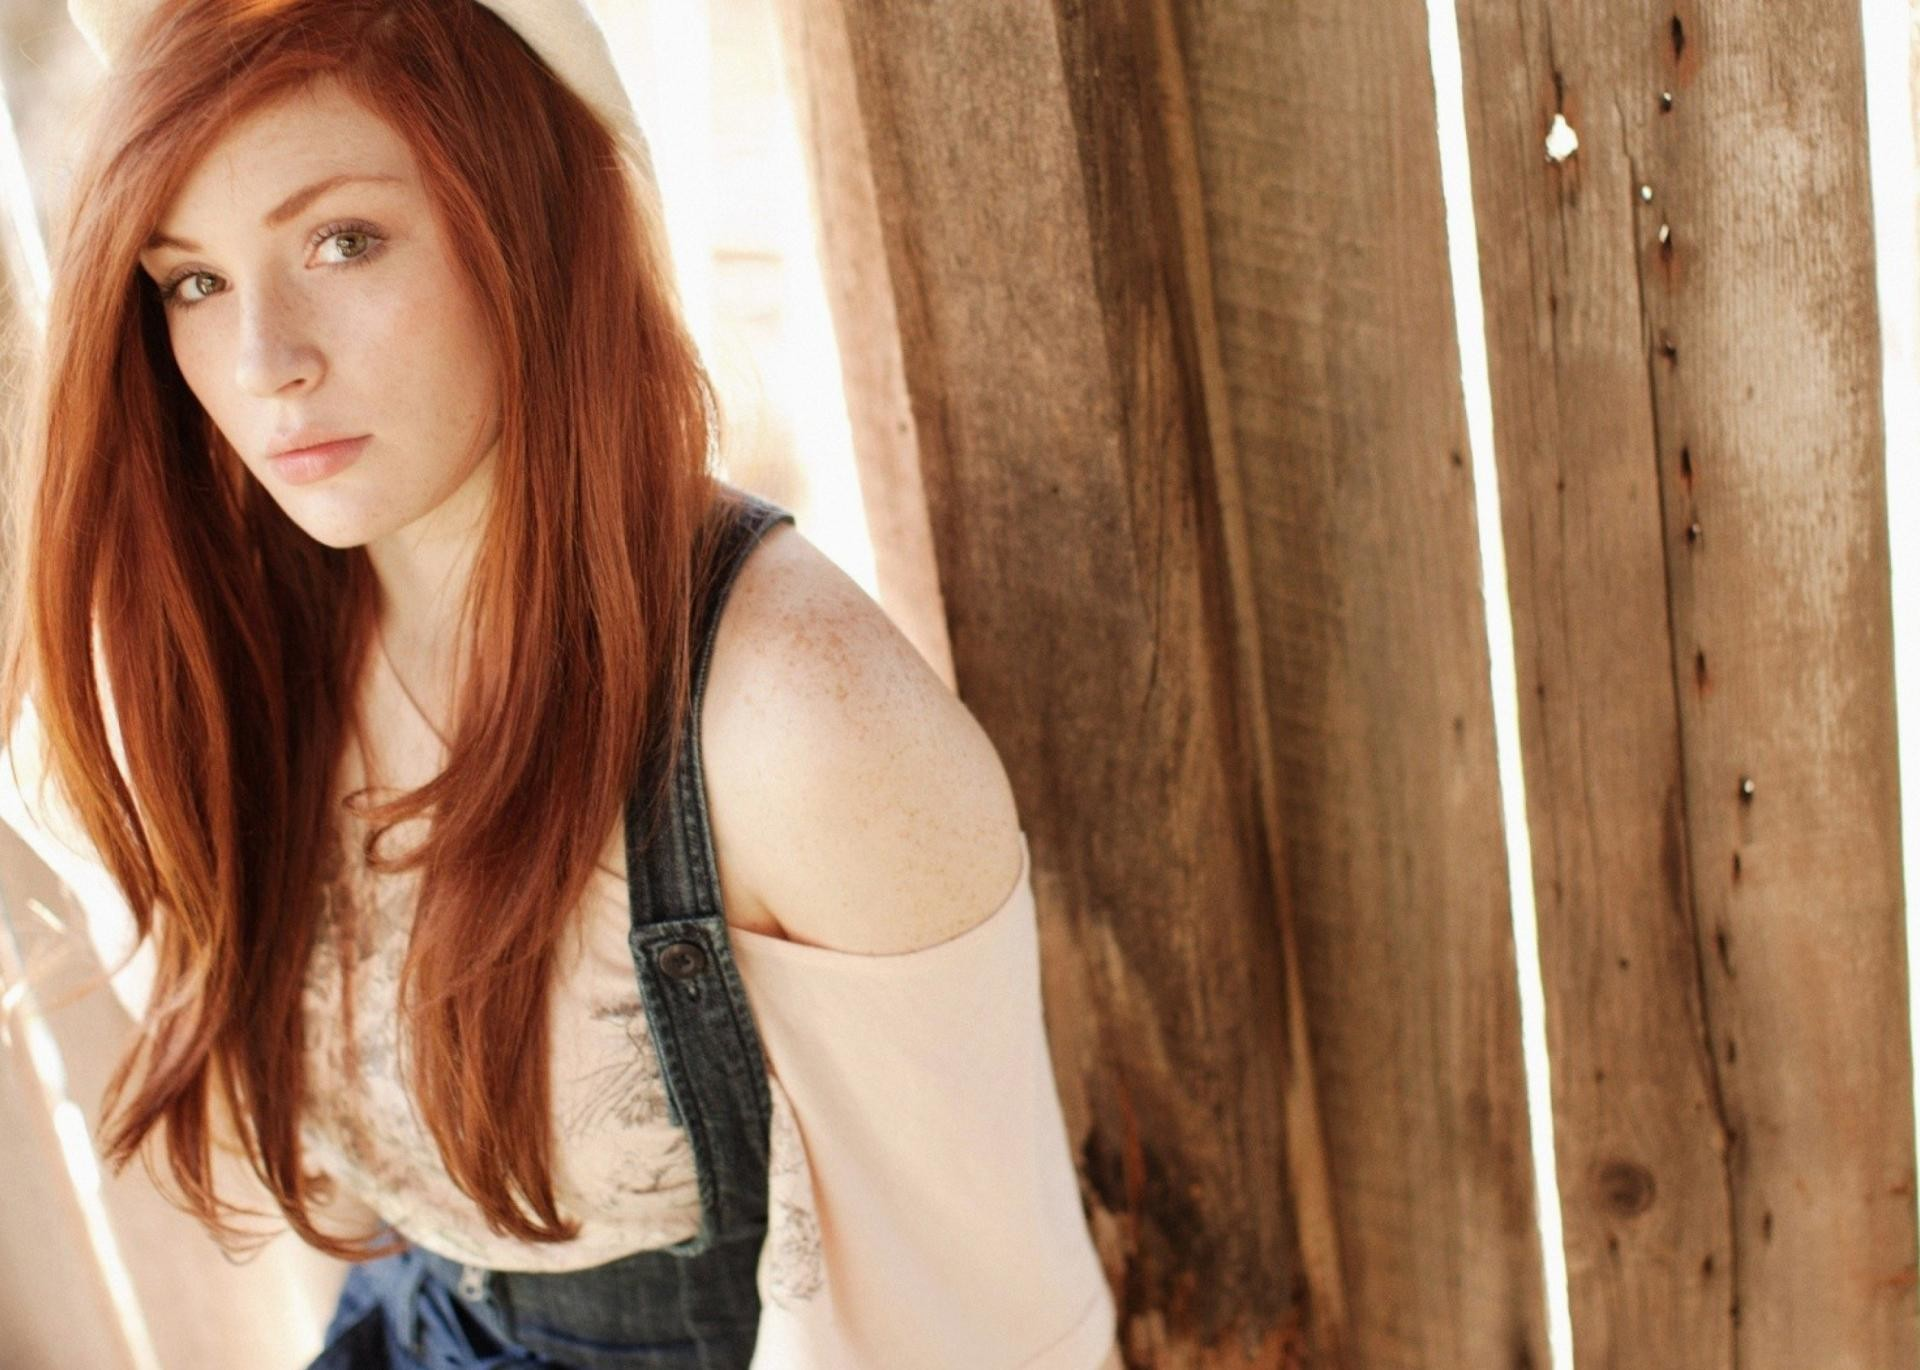 wallpaper.wiki-Redhead-Country-Girl-Pictures-1920×1408-PIC-